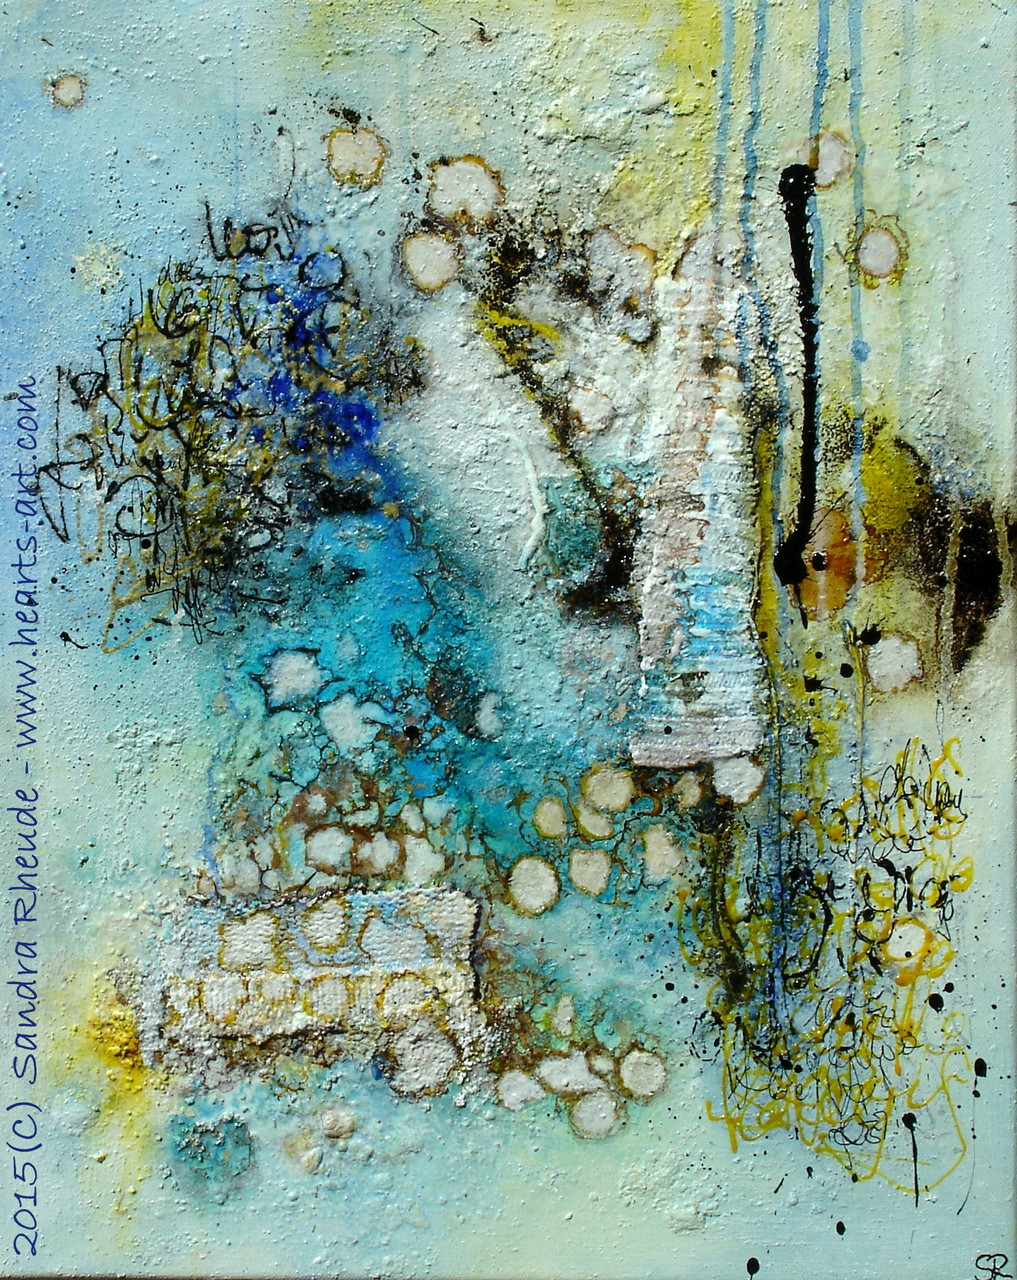 'Messages...' - 2015/27 - Acryl/MixedMedia auf Leinwand - 40 x 50 cm - € 290